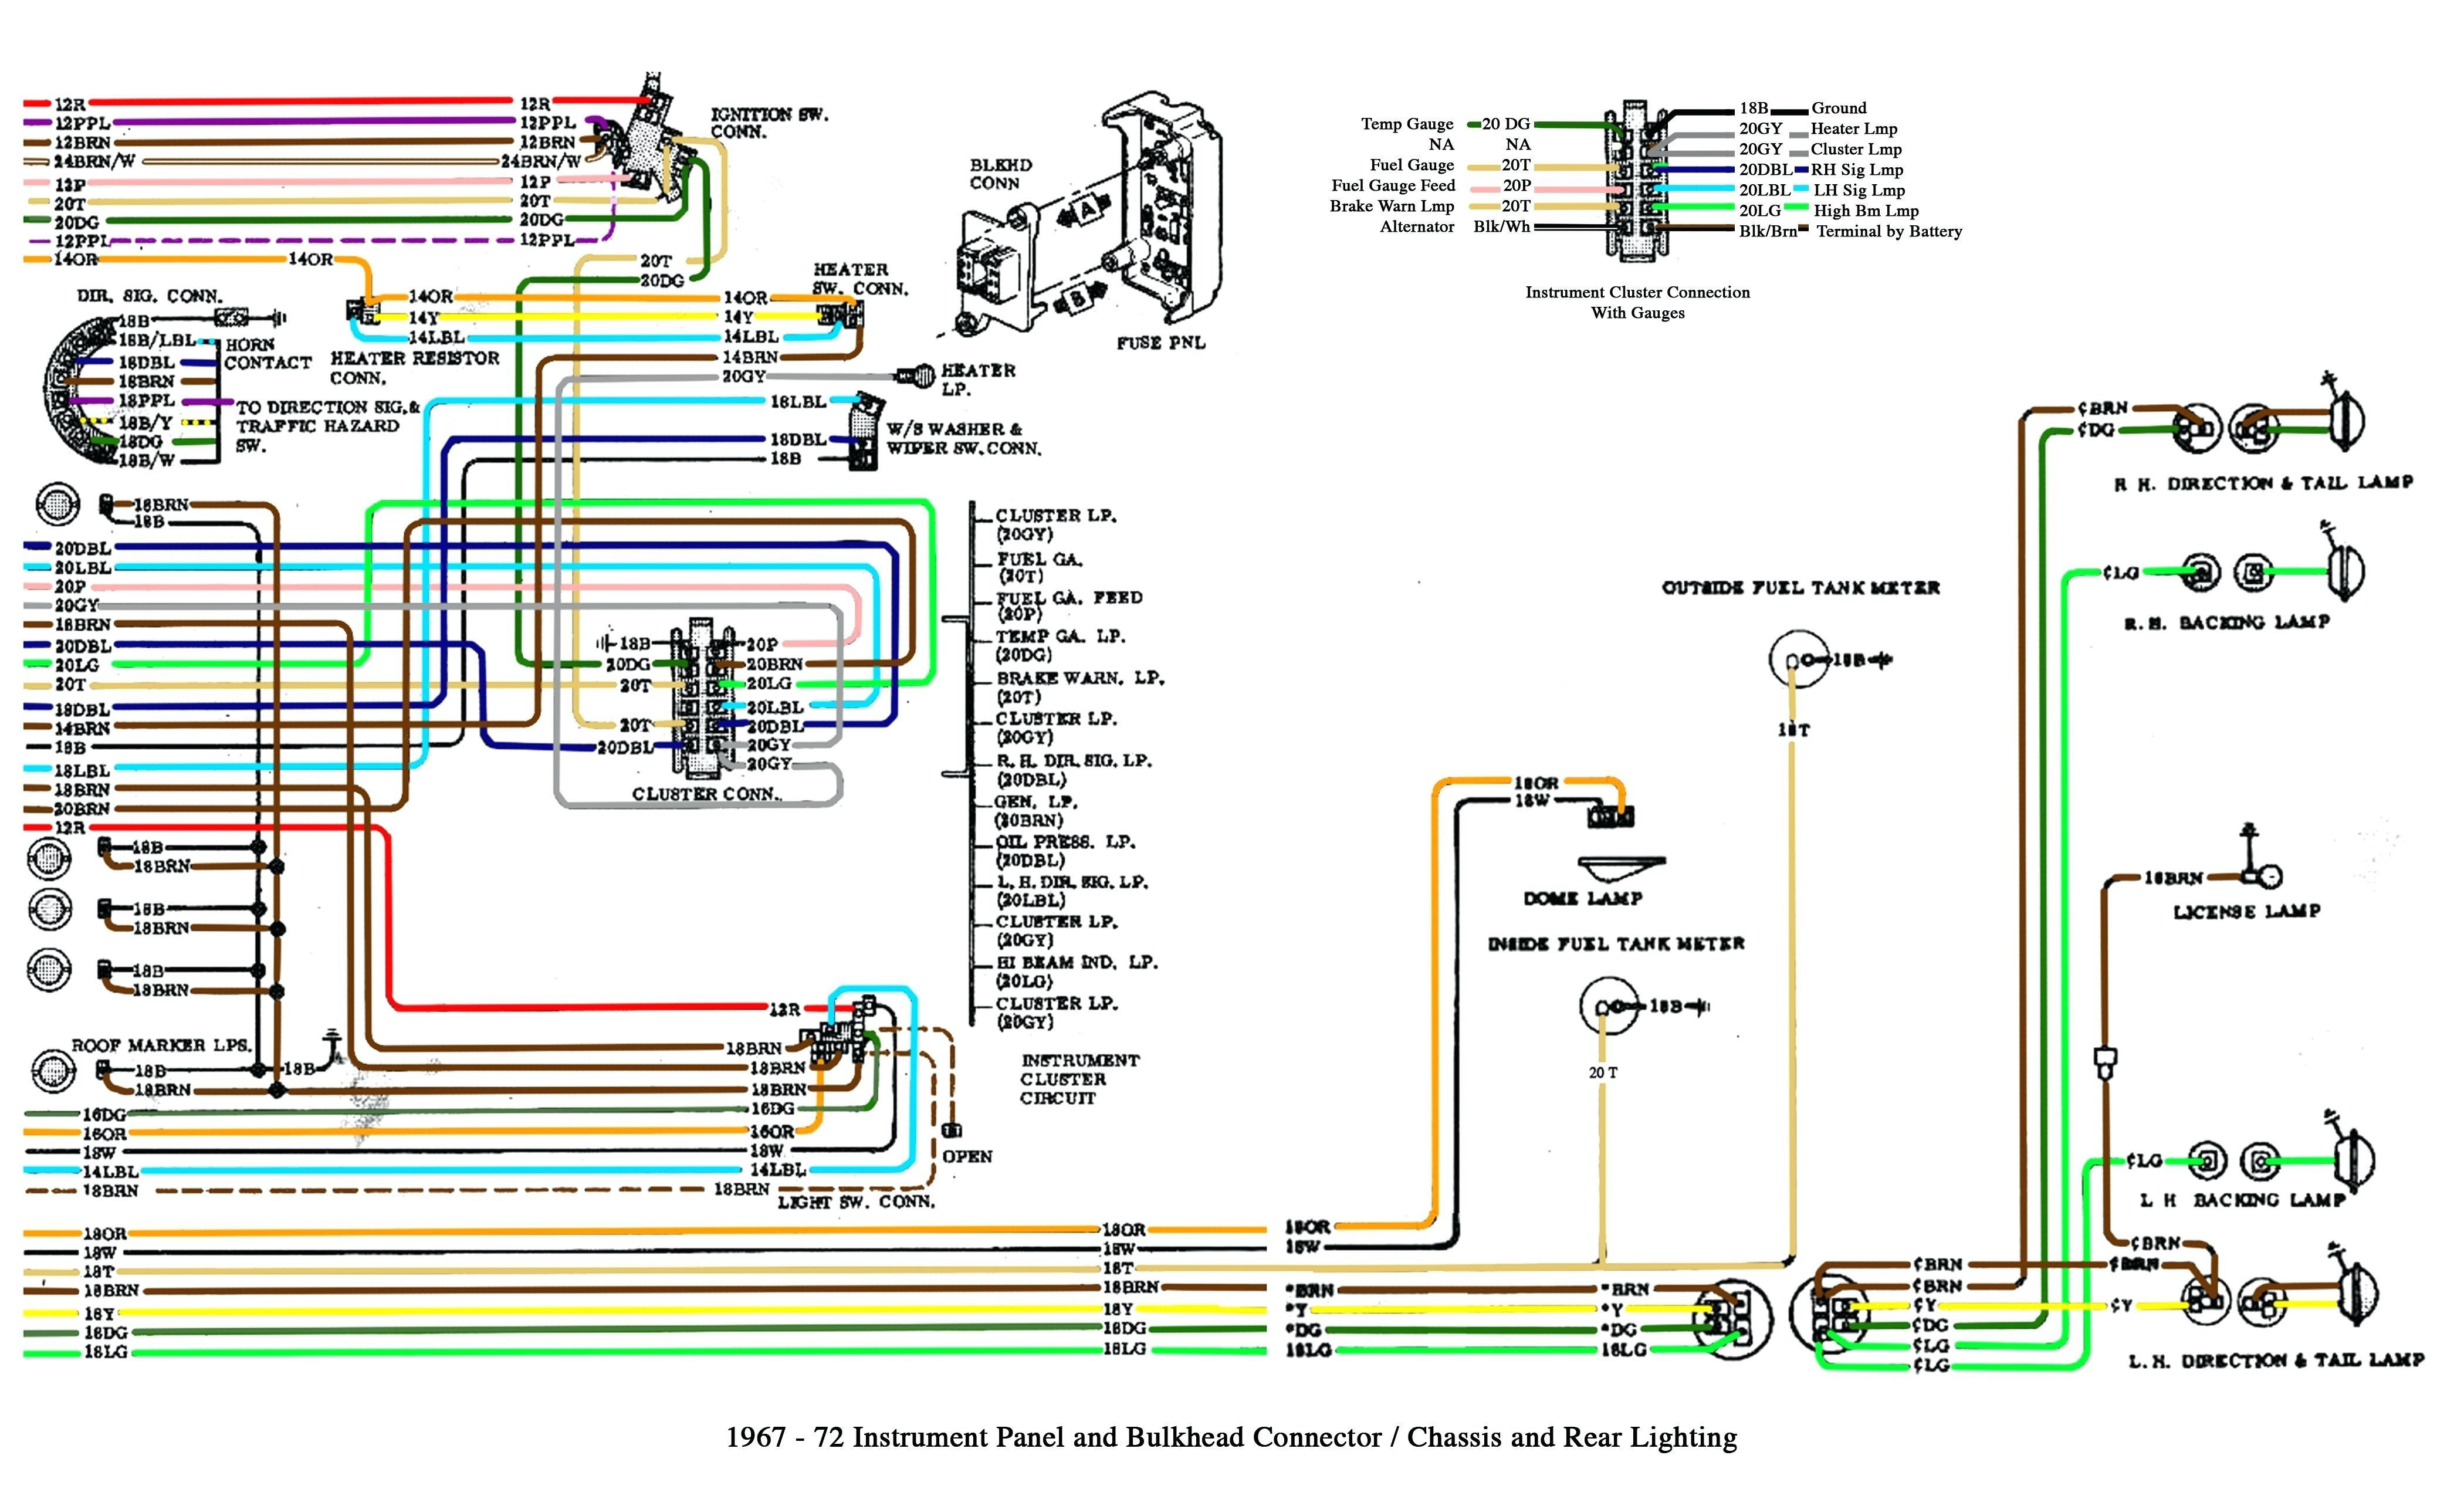 1985 Chevy Truck Wiring Diagram - Chevy Diagram